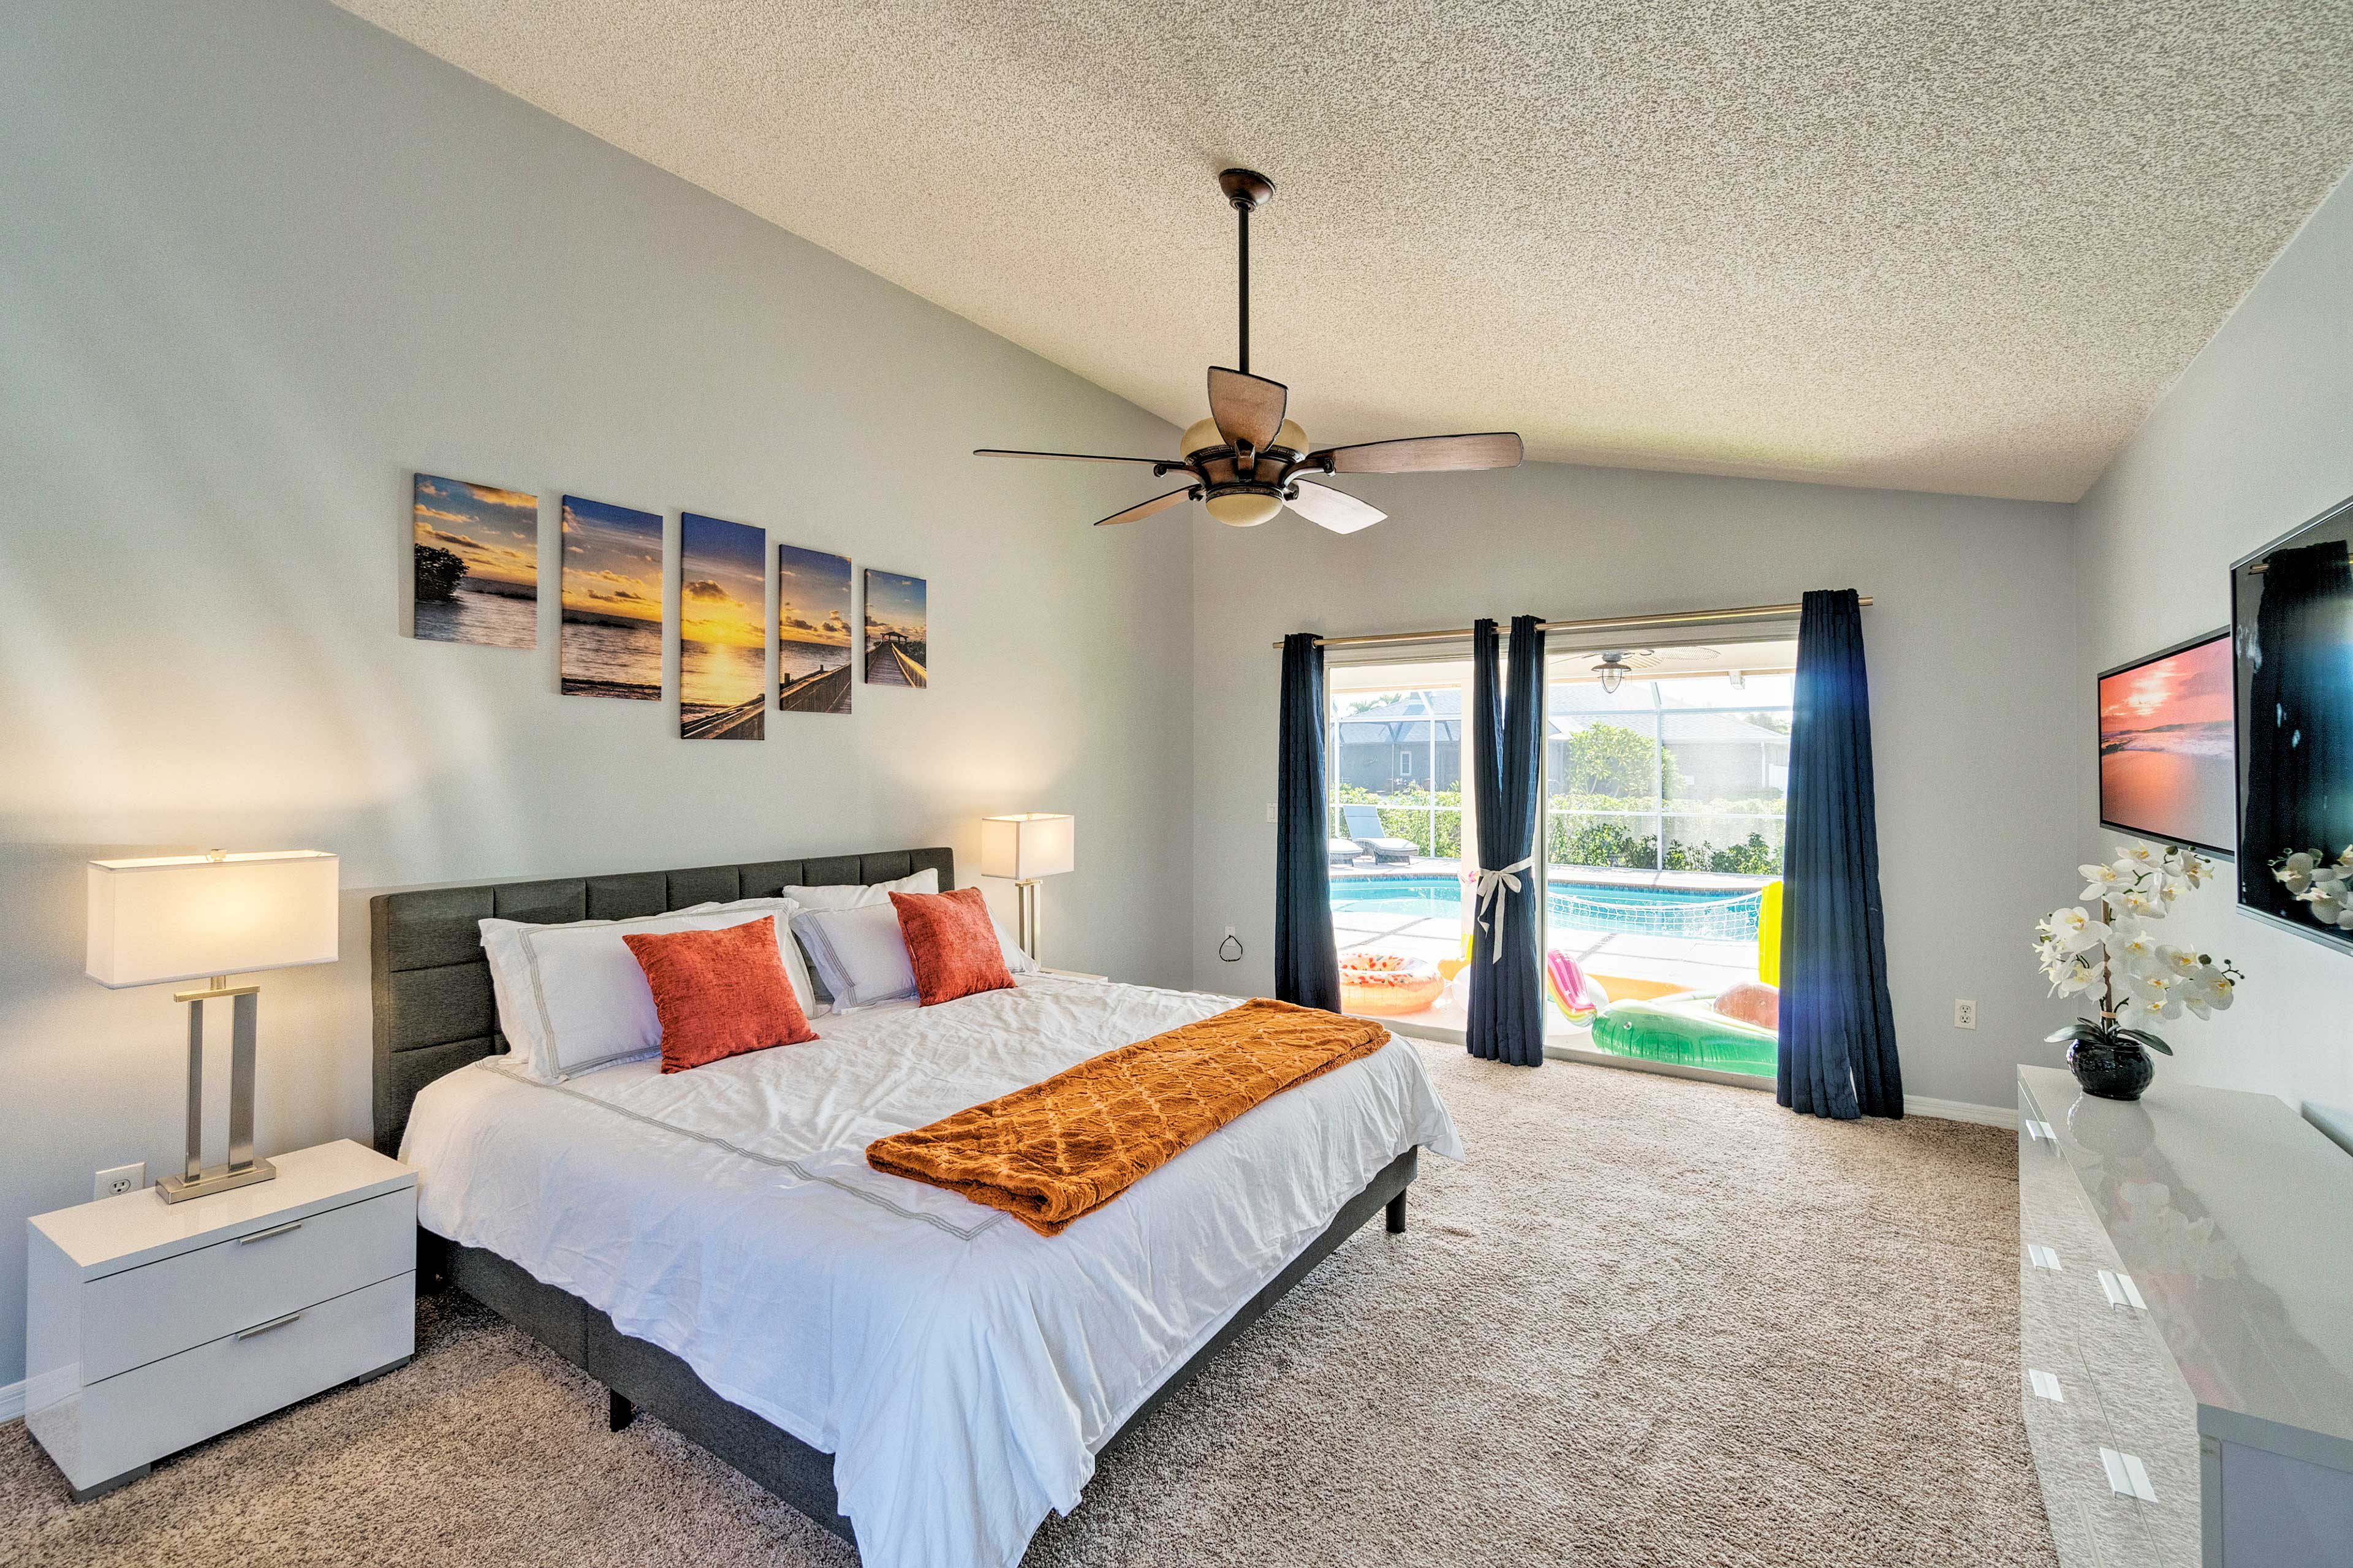 Sleep will come easy in this spacious master suite with a king bed.